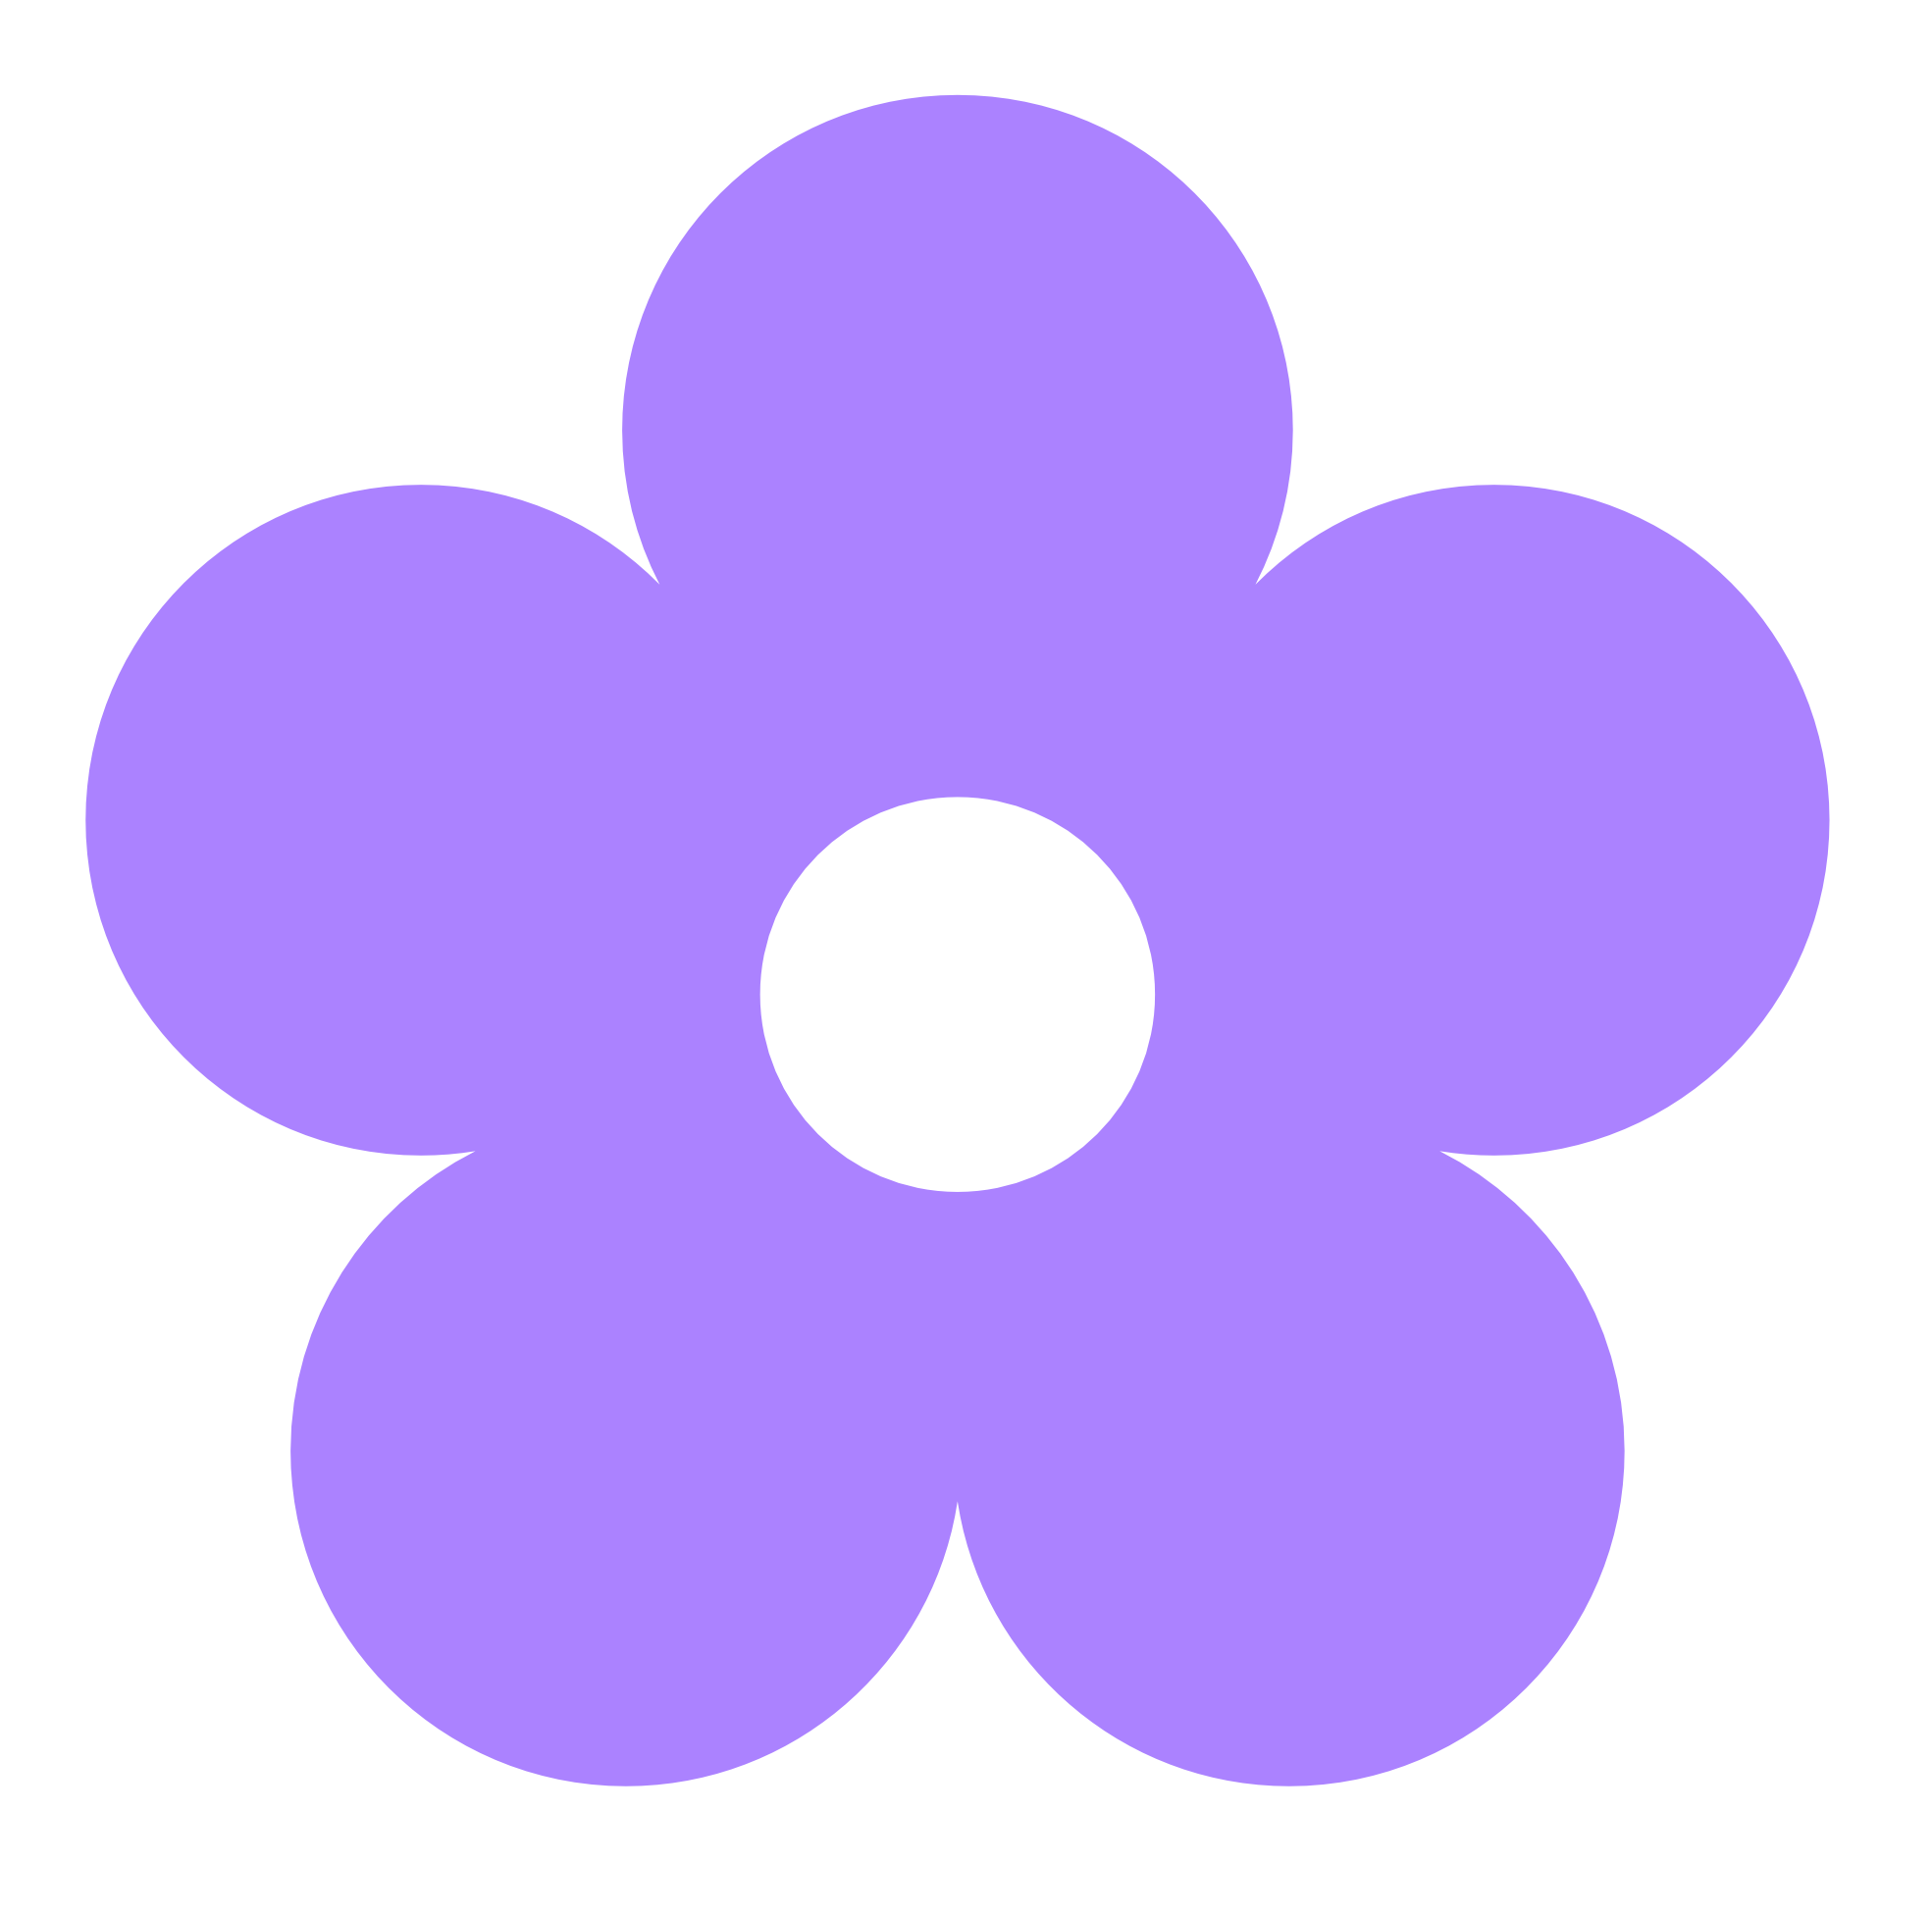 Flower png vector. Purple clipart